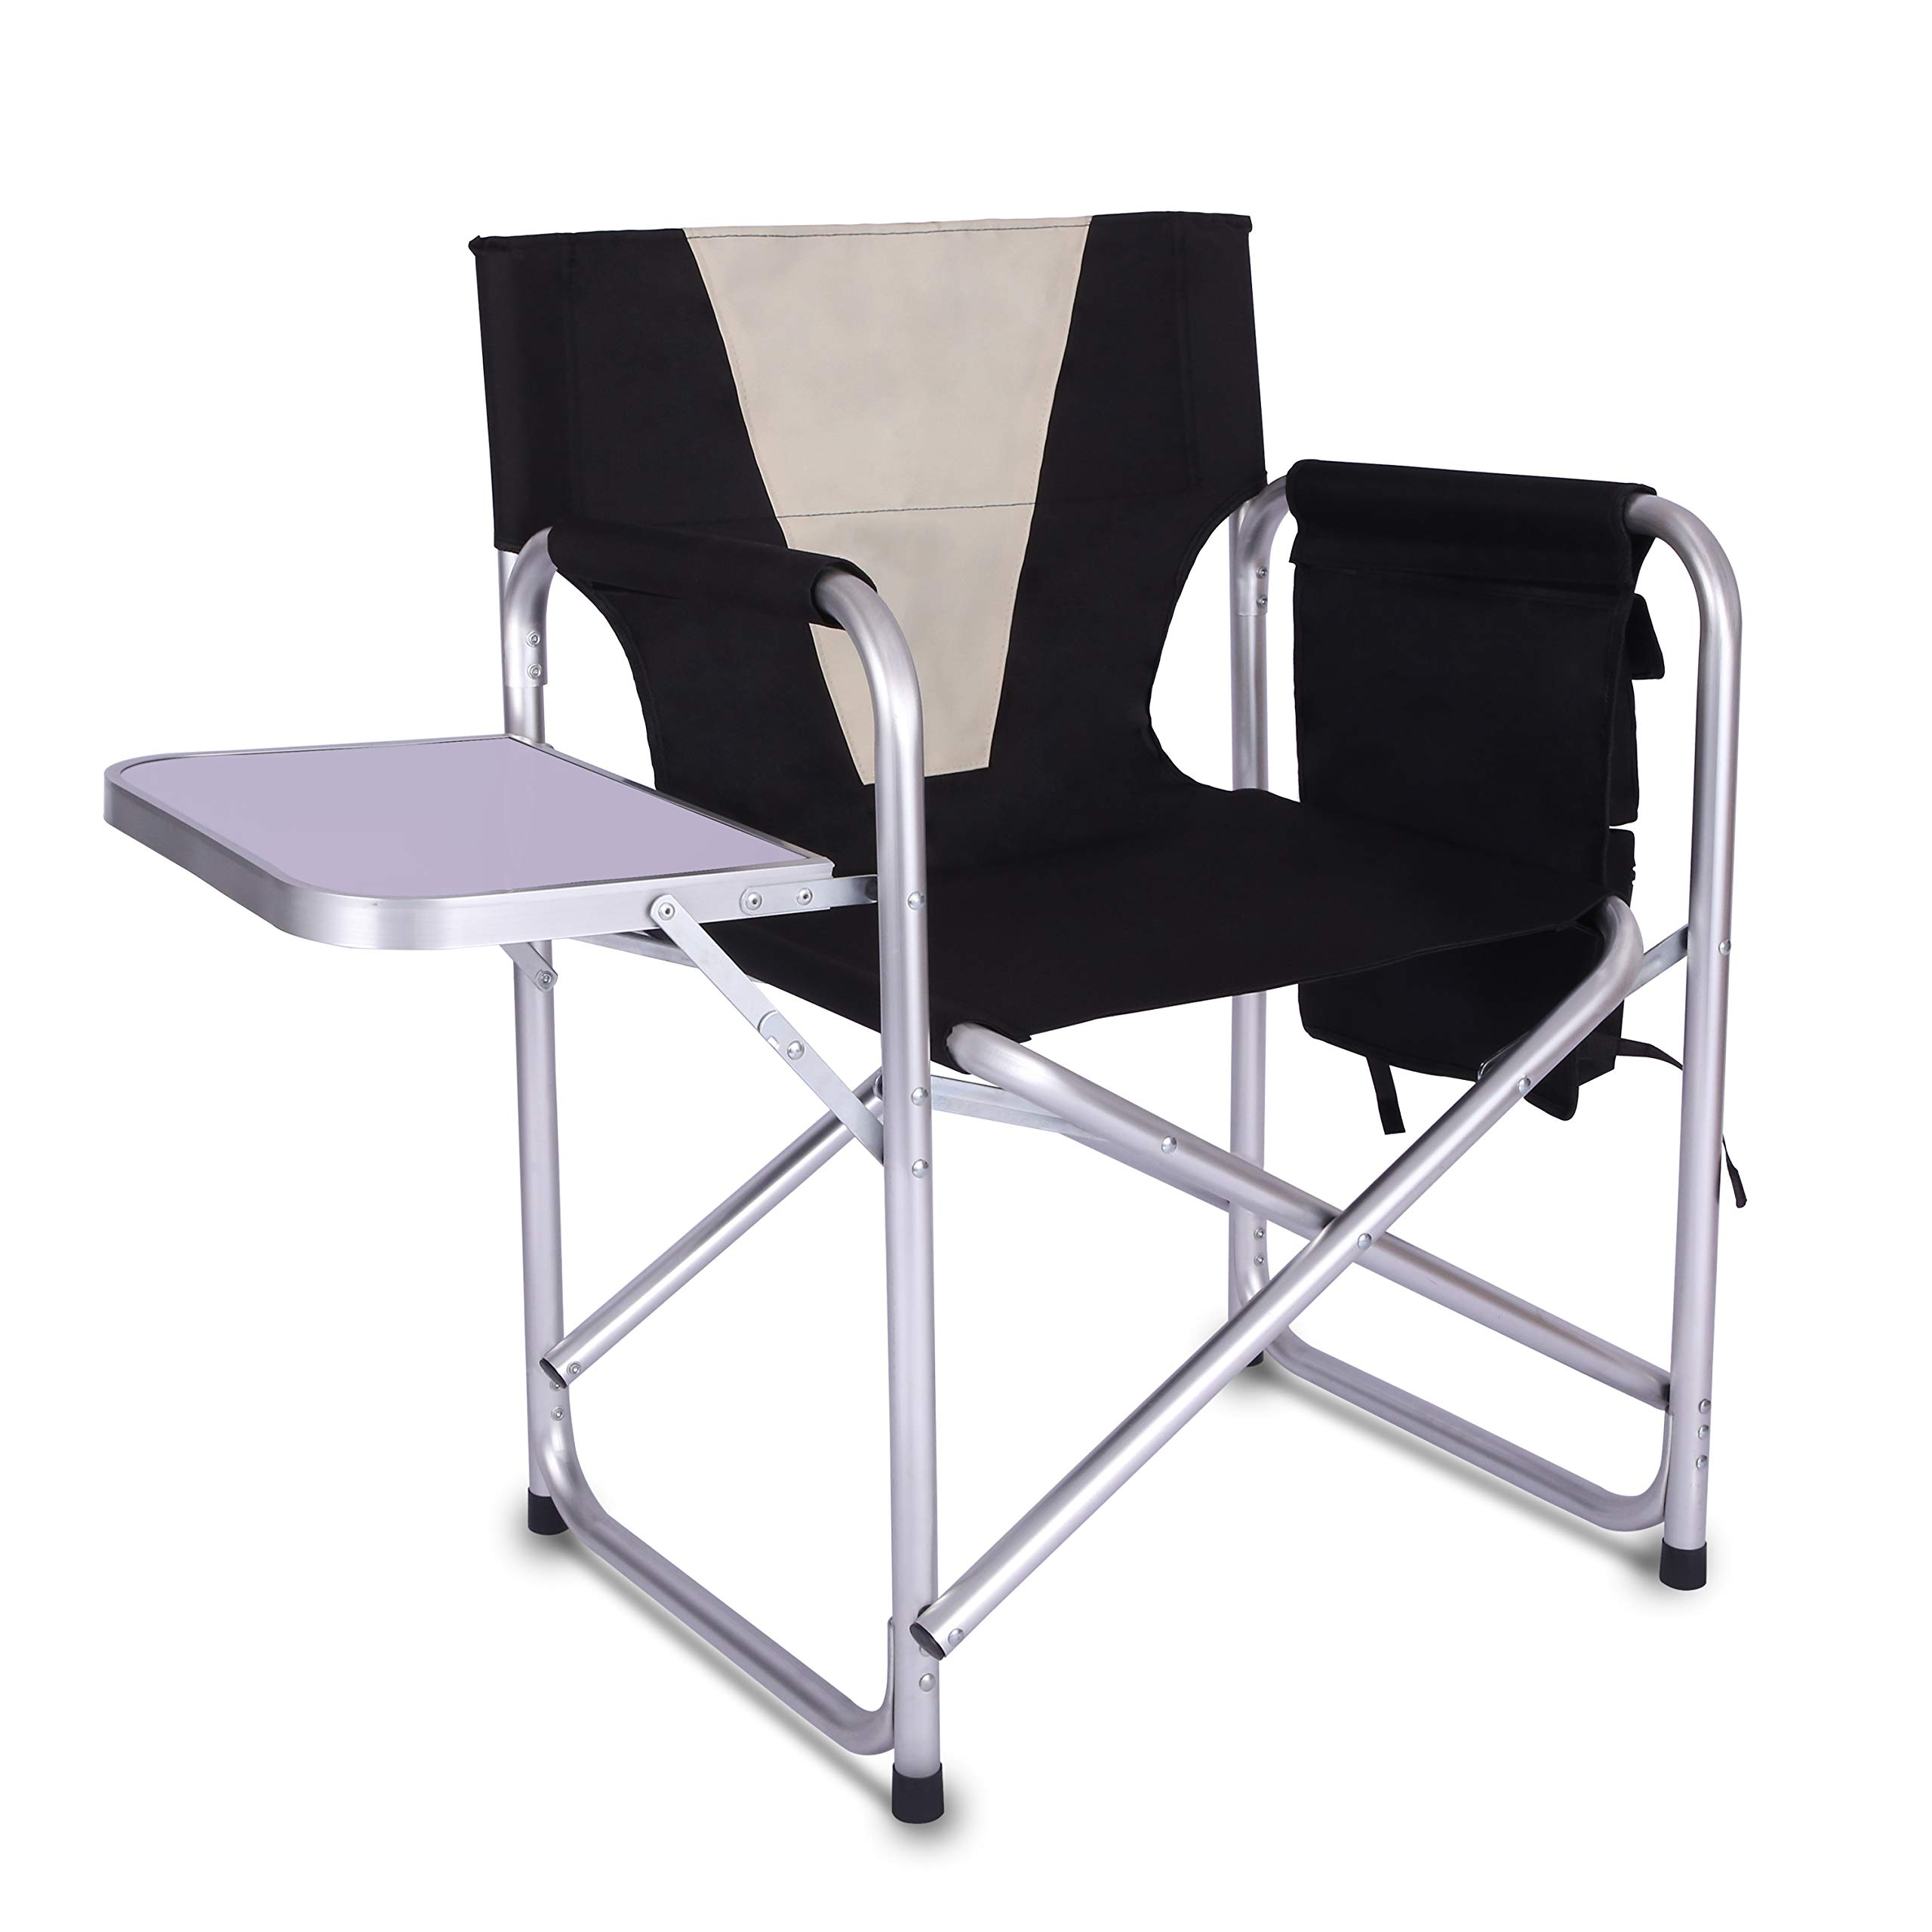 Camping Folding Director's Chair - Full Back Aluminum Lightweight Chair Supports 300lbs with Aluminum Side Table Storage Bag Indoor Outdoor,Weight 8.37 lbs by Shaddock Fishing